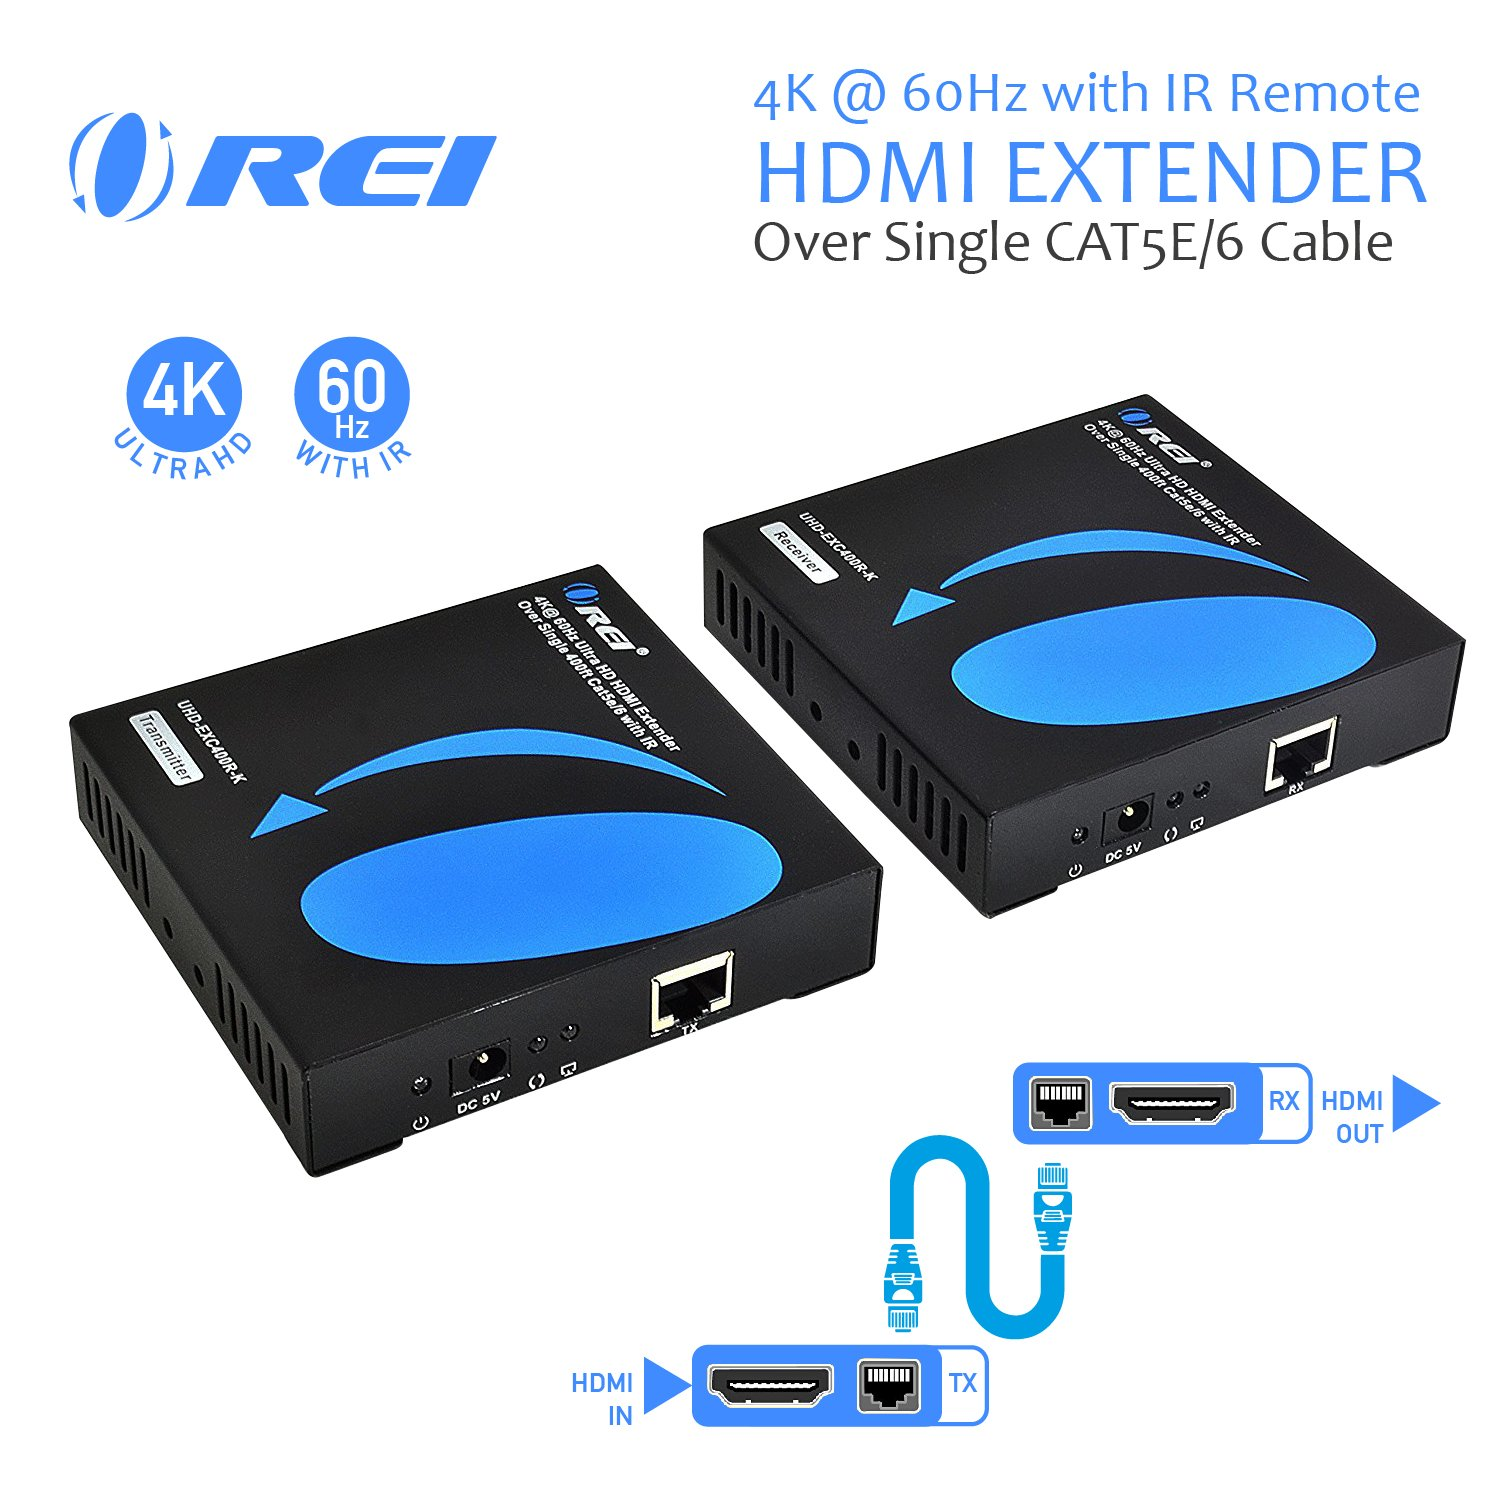 OREI HDMI Extender 4K Over Single CAT5e/CAT6 Cable One to Many Multiple Display Matrix 4K @ 60Hz With IR Remote - Up to 400 Ft - ProLNK Tecnhology